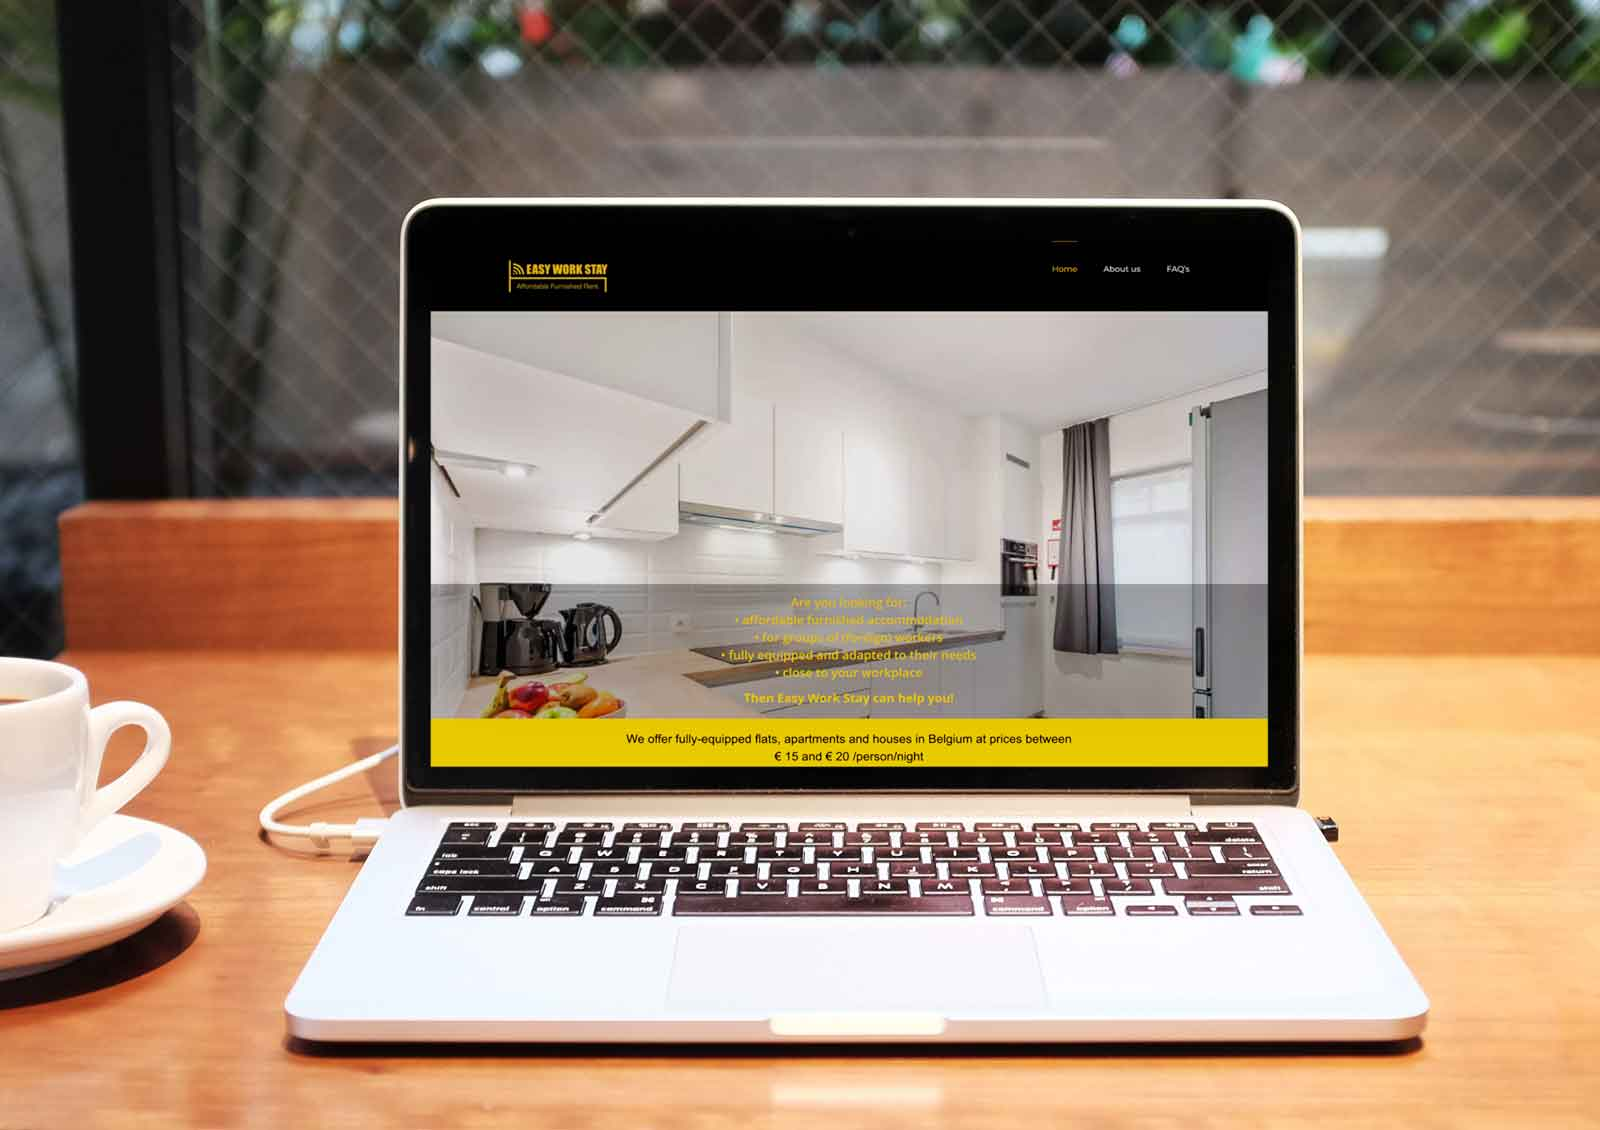 Webdesign-bureau-Knokke-Heist-Mioo-Design-website-ontwerp-website-ontwikkeling-Zoekmachine-optimalisatie-SEO-Easy-work-stay